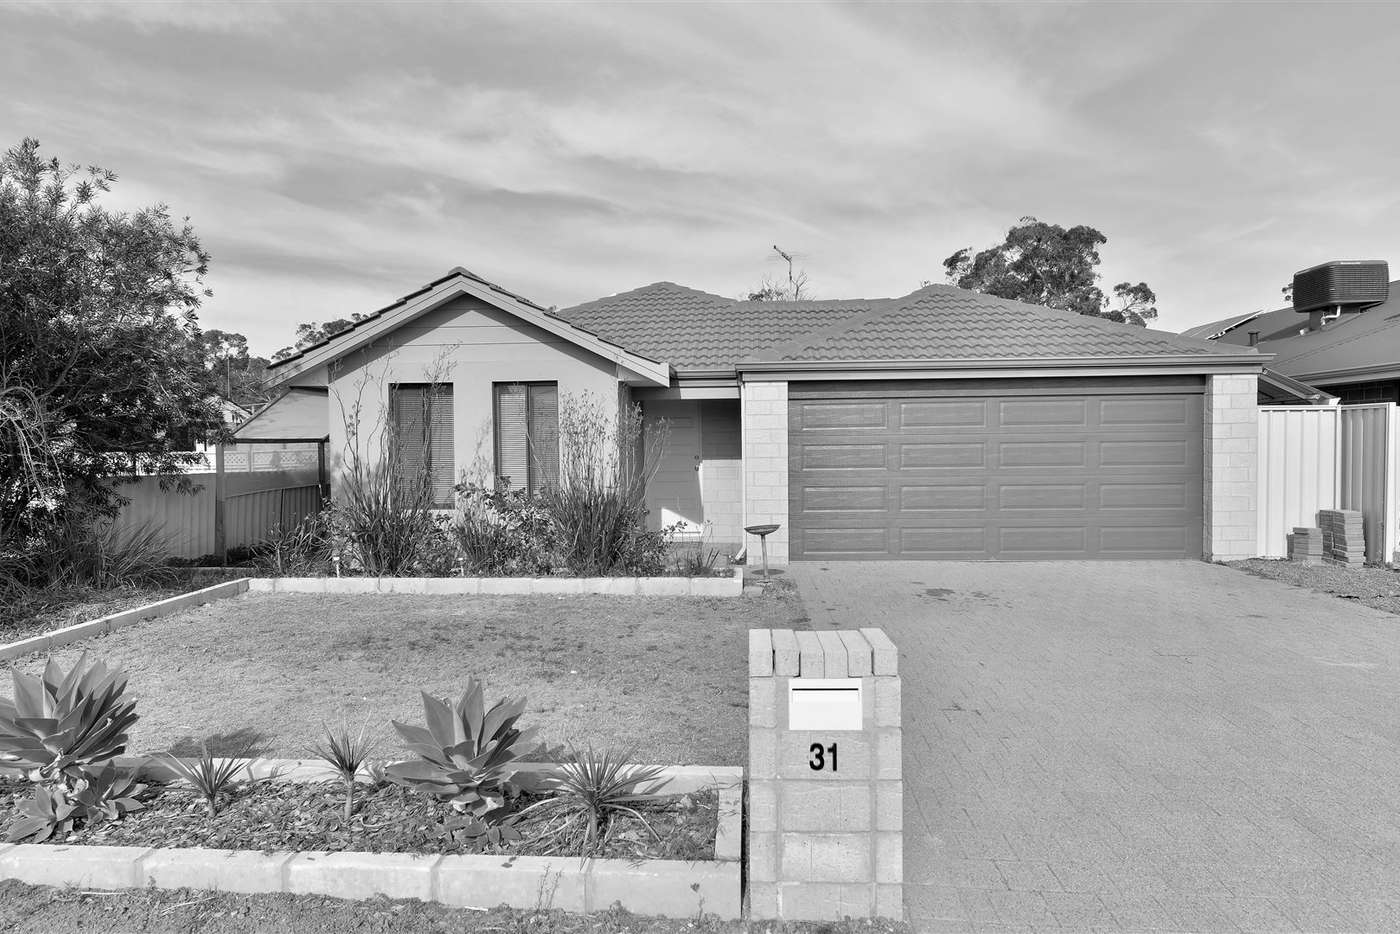 Main view of Homely house listing, 31 Gowman Way, Ravenswood WA 6208